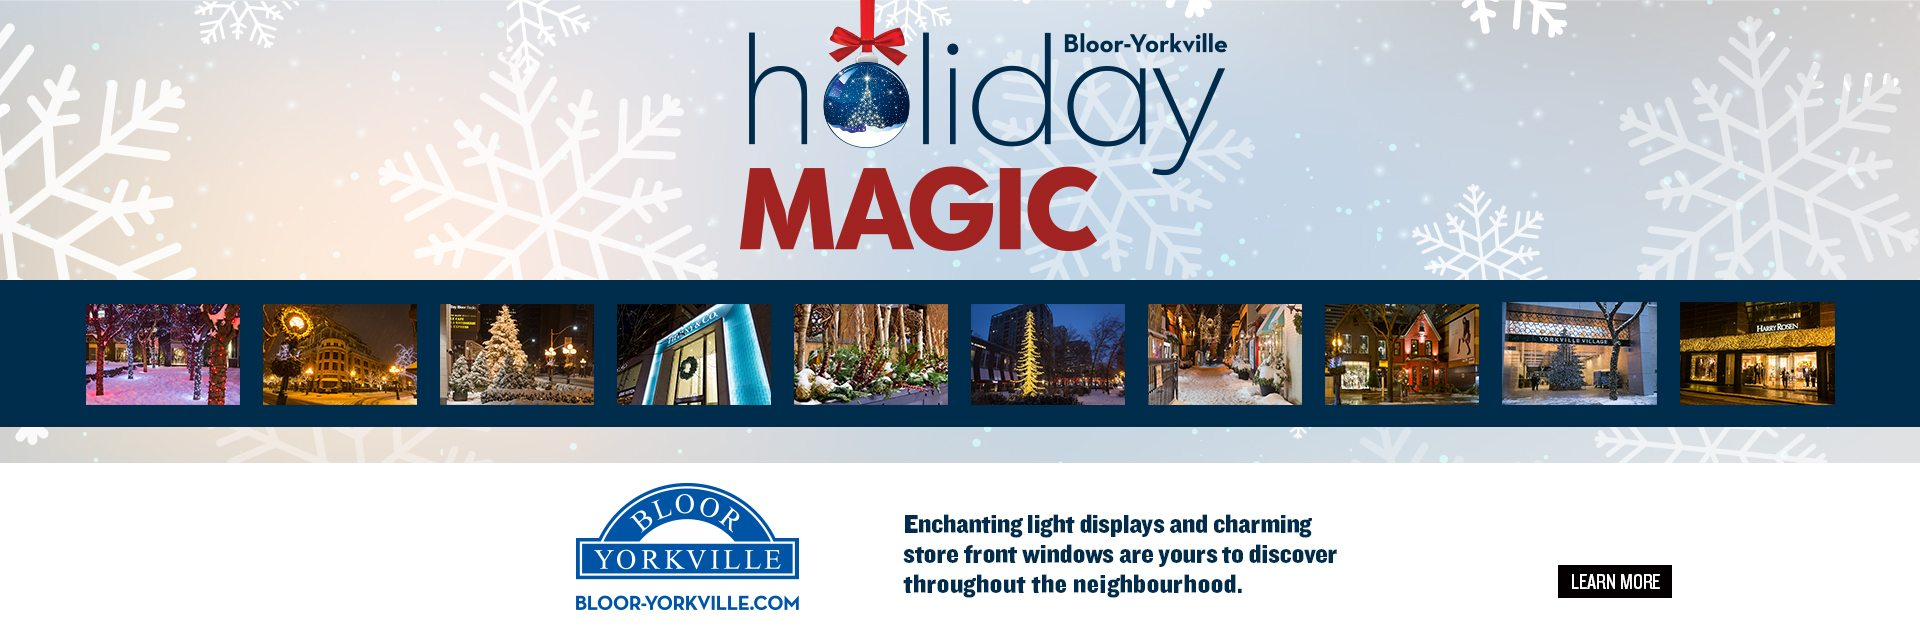 Holiday Magic Continues in Bloor-Yorkville!